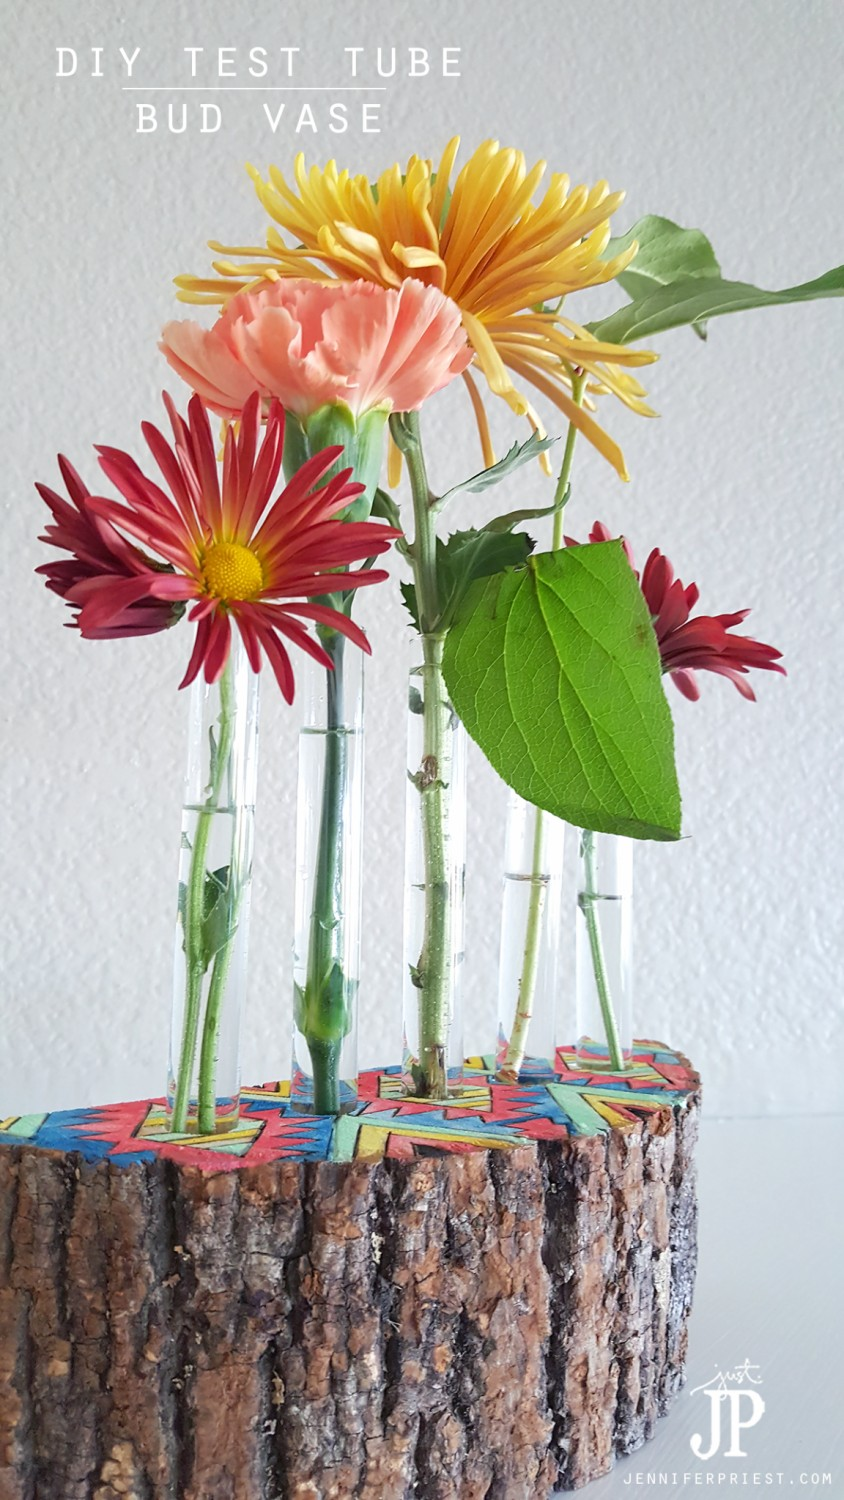 DIY-Test-Tube-Vase